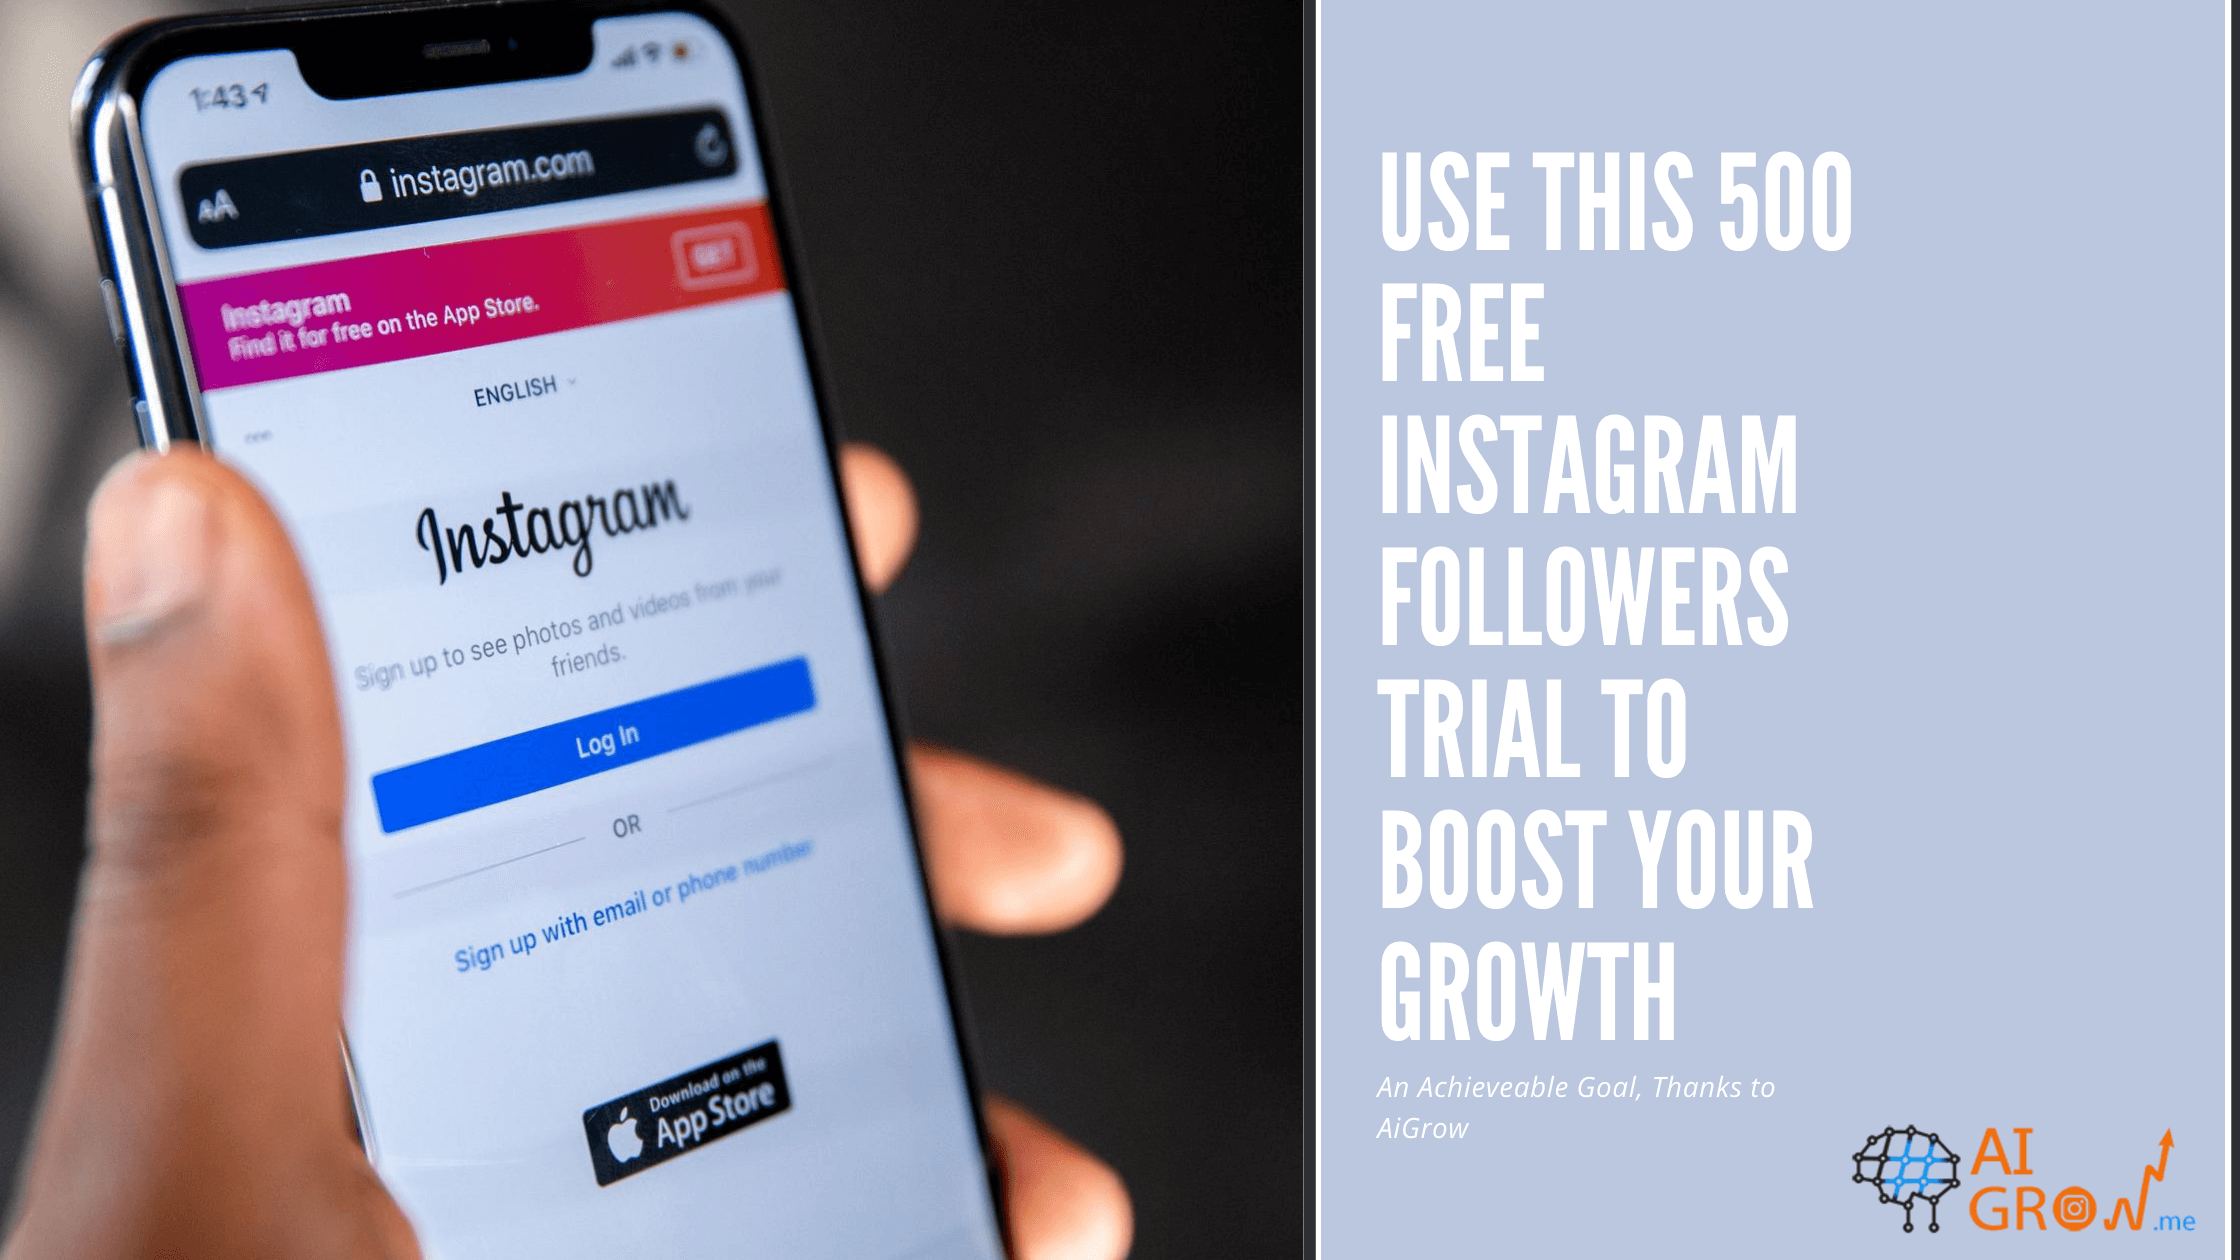 Use this 500 free Instagram followers trial to boost your growth